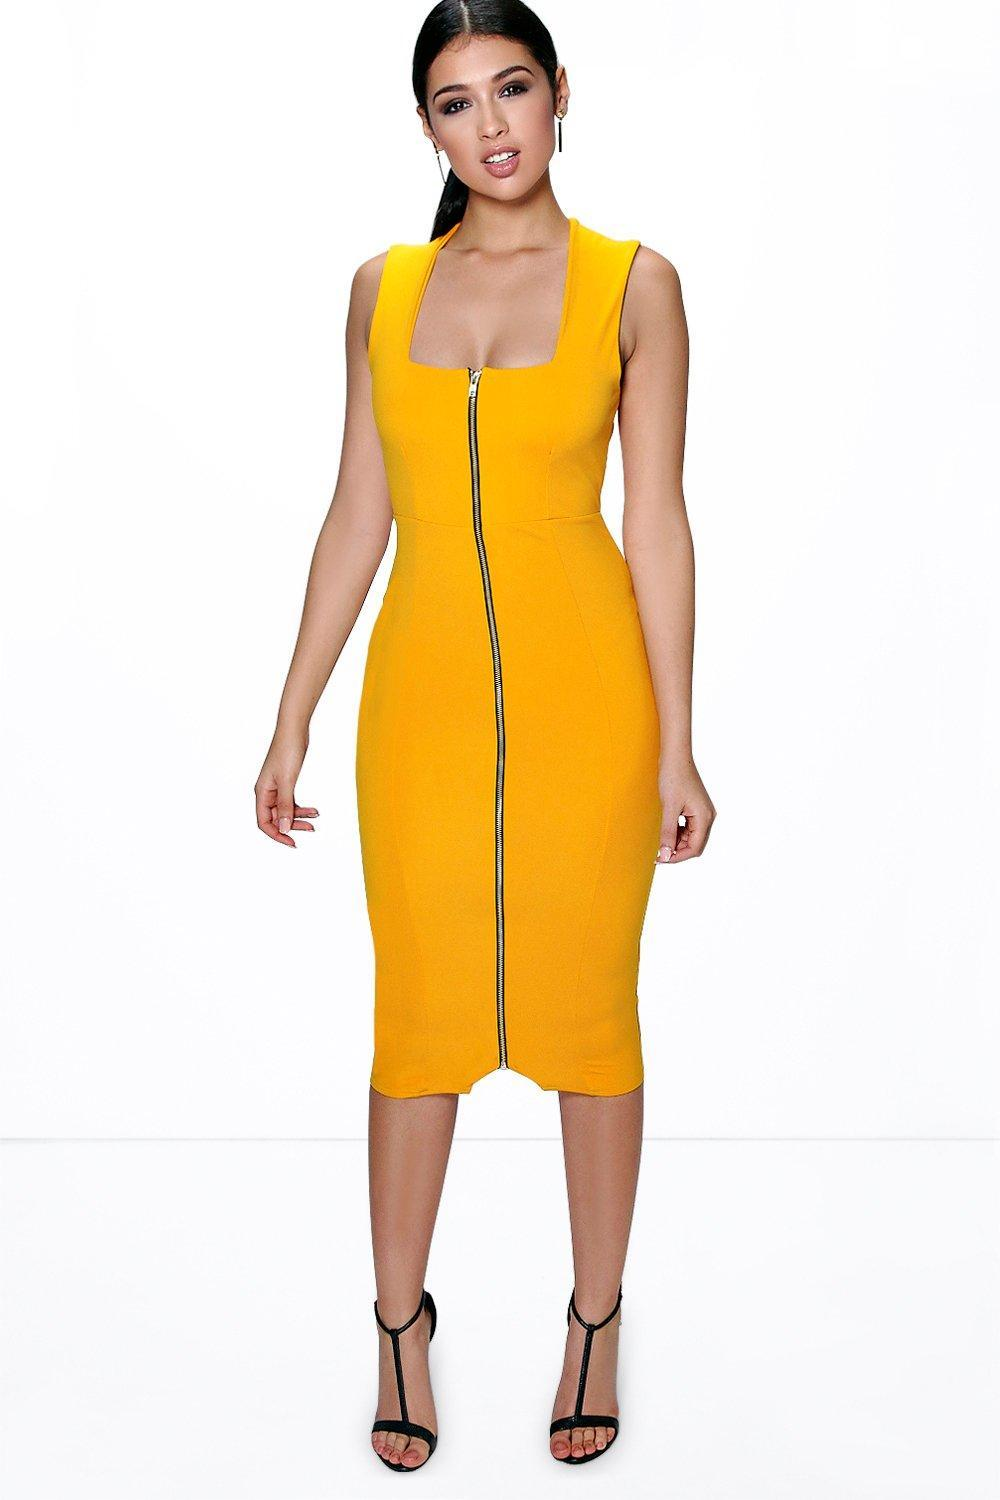 Square Neck Zip Front Midi Bodycon Dress Ochre - length: below the knee; fit: tailored/fitted; pattern: plain; sleeve style: sleeveless; style: bodycon; hip detail: fitted at hip; predominant colour: yellow; occasions: evening; fibres: polyester/polyamide - stretch; sleeve length: sleeveless; texture group: jersey - clingy; neckline: low square neck; pattern type: fabric; embellishment: zips; season: a/w 2015